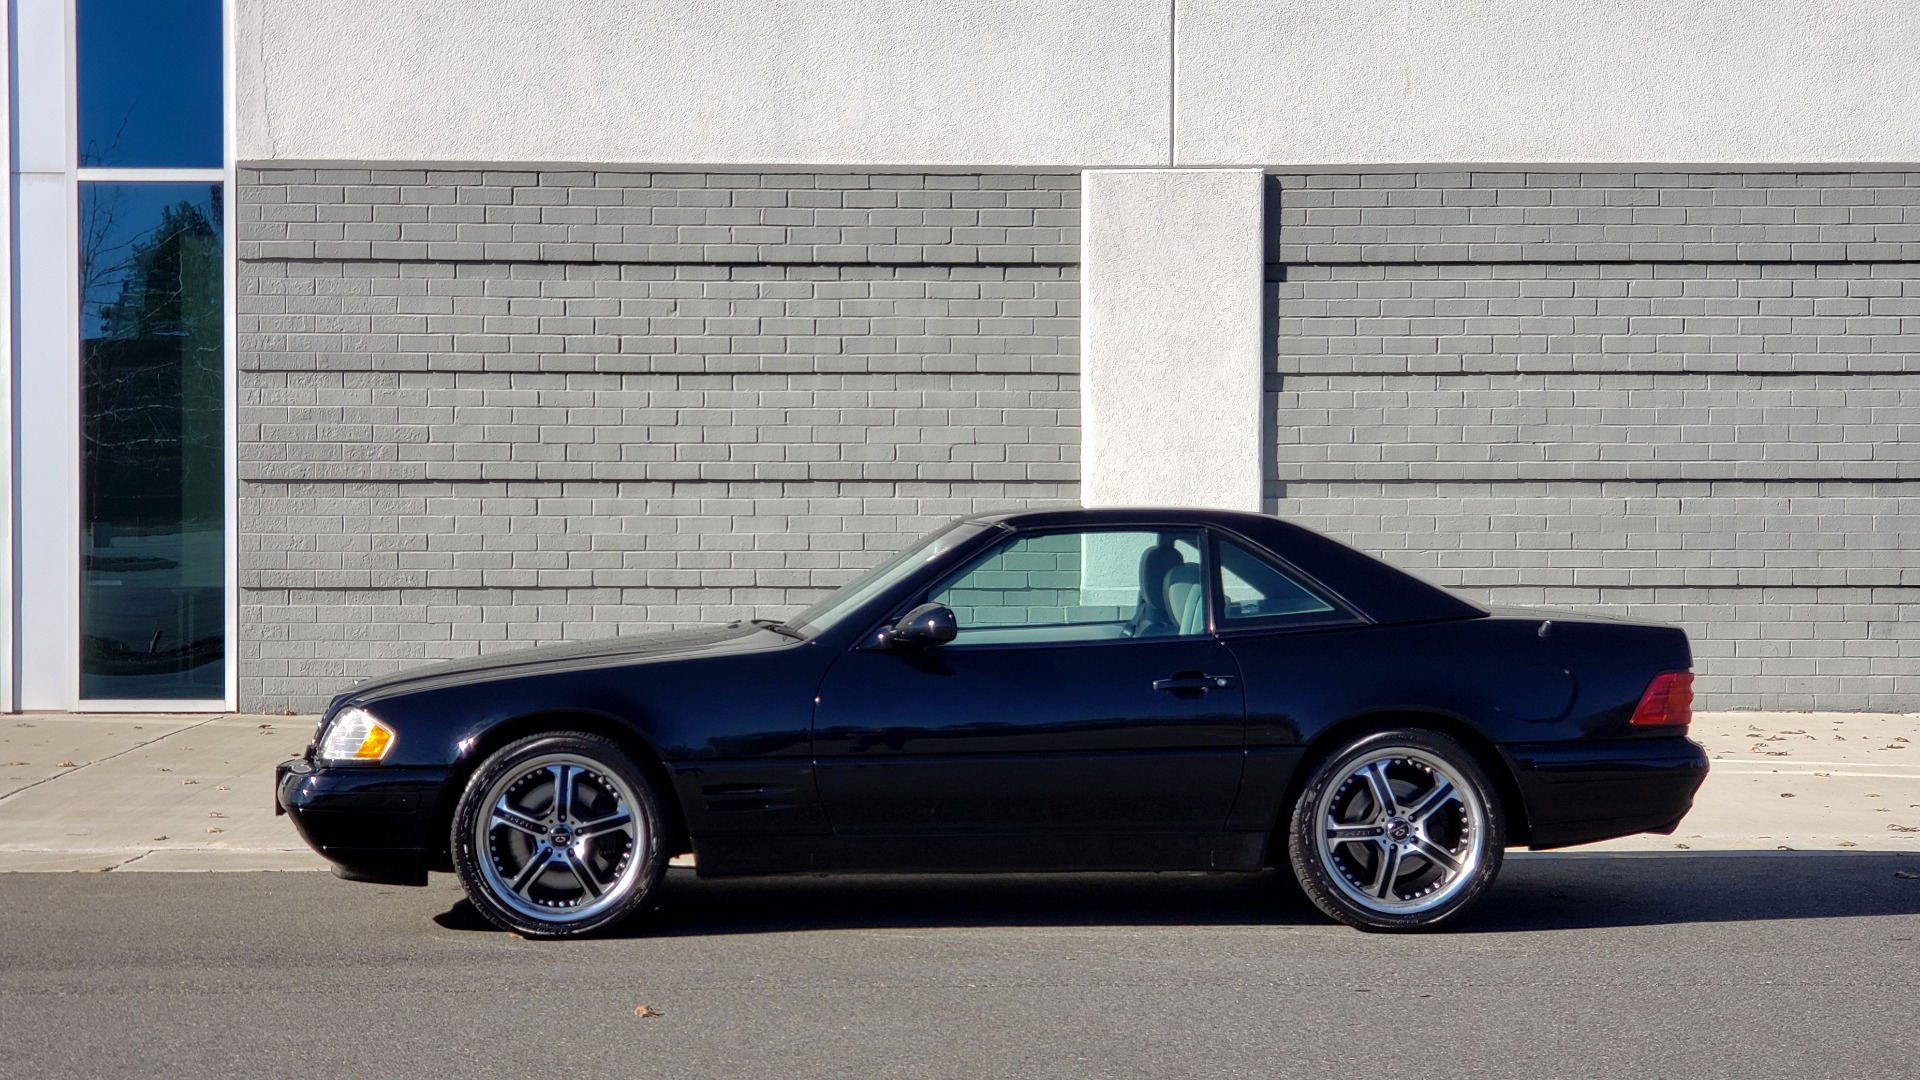 Used 1999 Mercedes-Benz SL-CLASS ROADSTER / 5.0L V8 (302HP) / 5-SPD AUTO / 18IN WHEELS for sale Sold at Formula Imports in Charlotte NC 28227 2